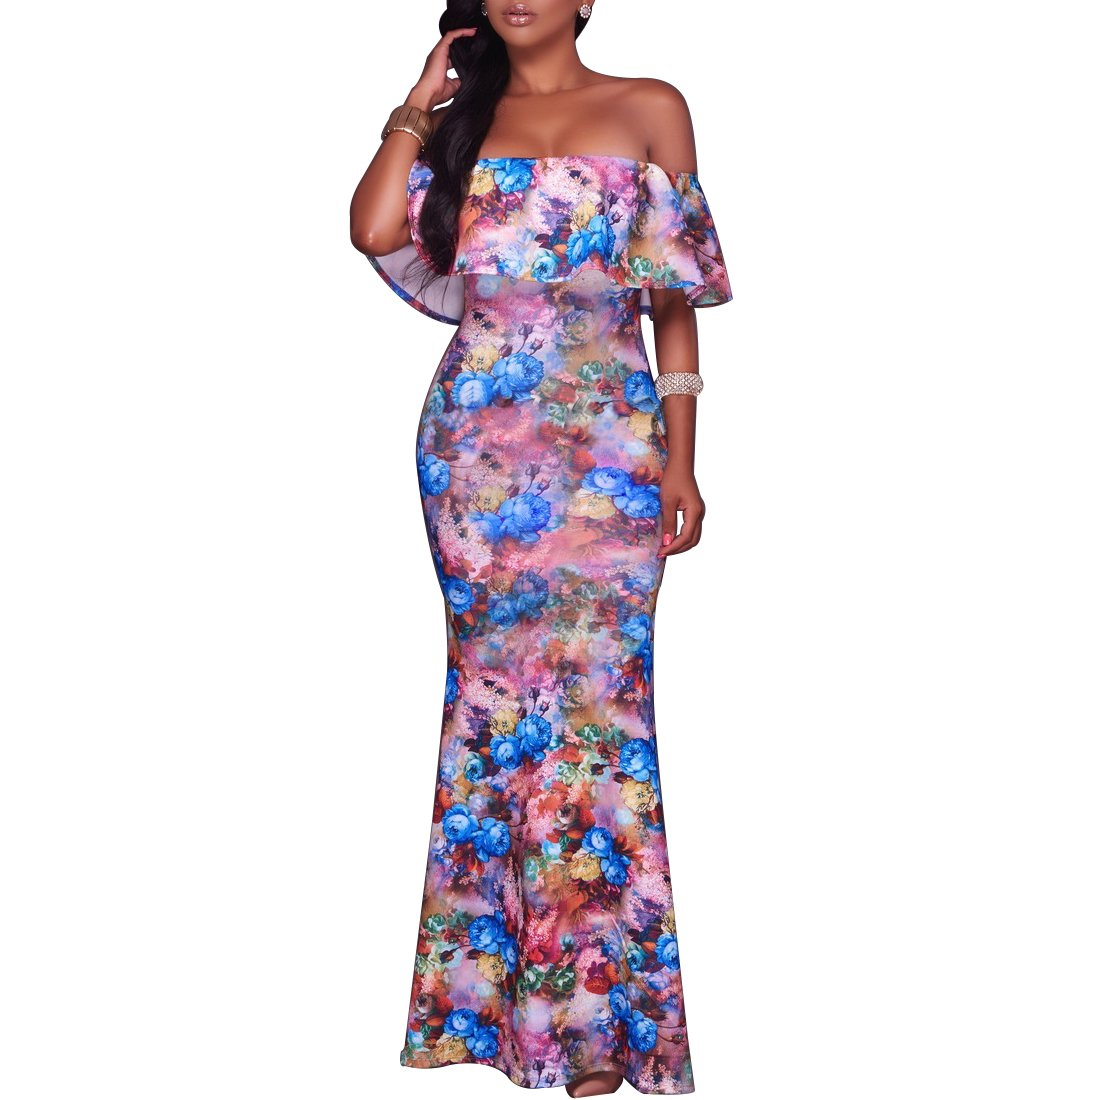 511bcf7e63b Dynen Women s Floral Print Off Shoulder Ruffle Party Long Maxi Dress at  Amazon Women s Clothing store